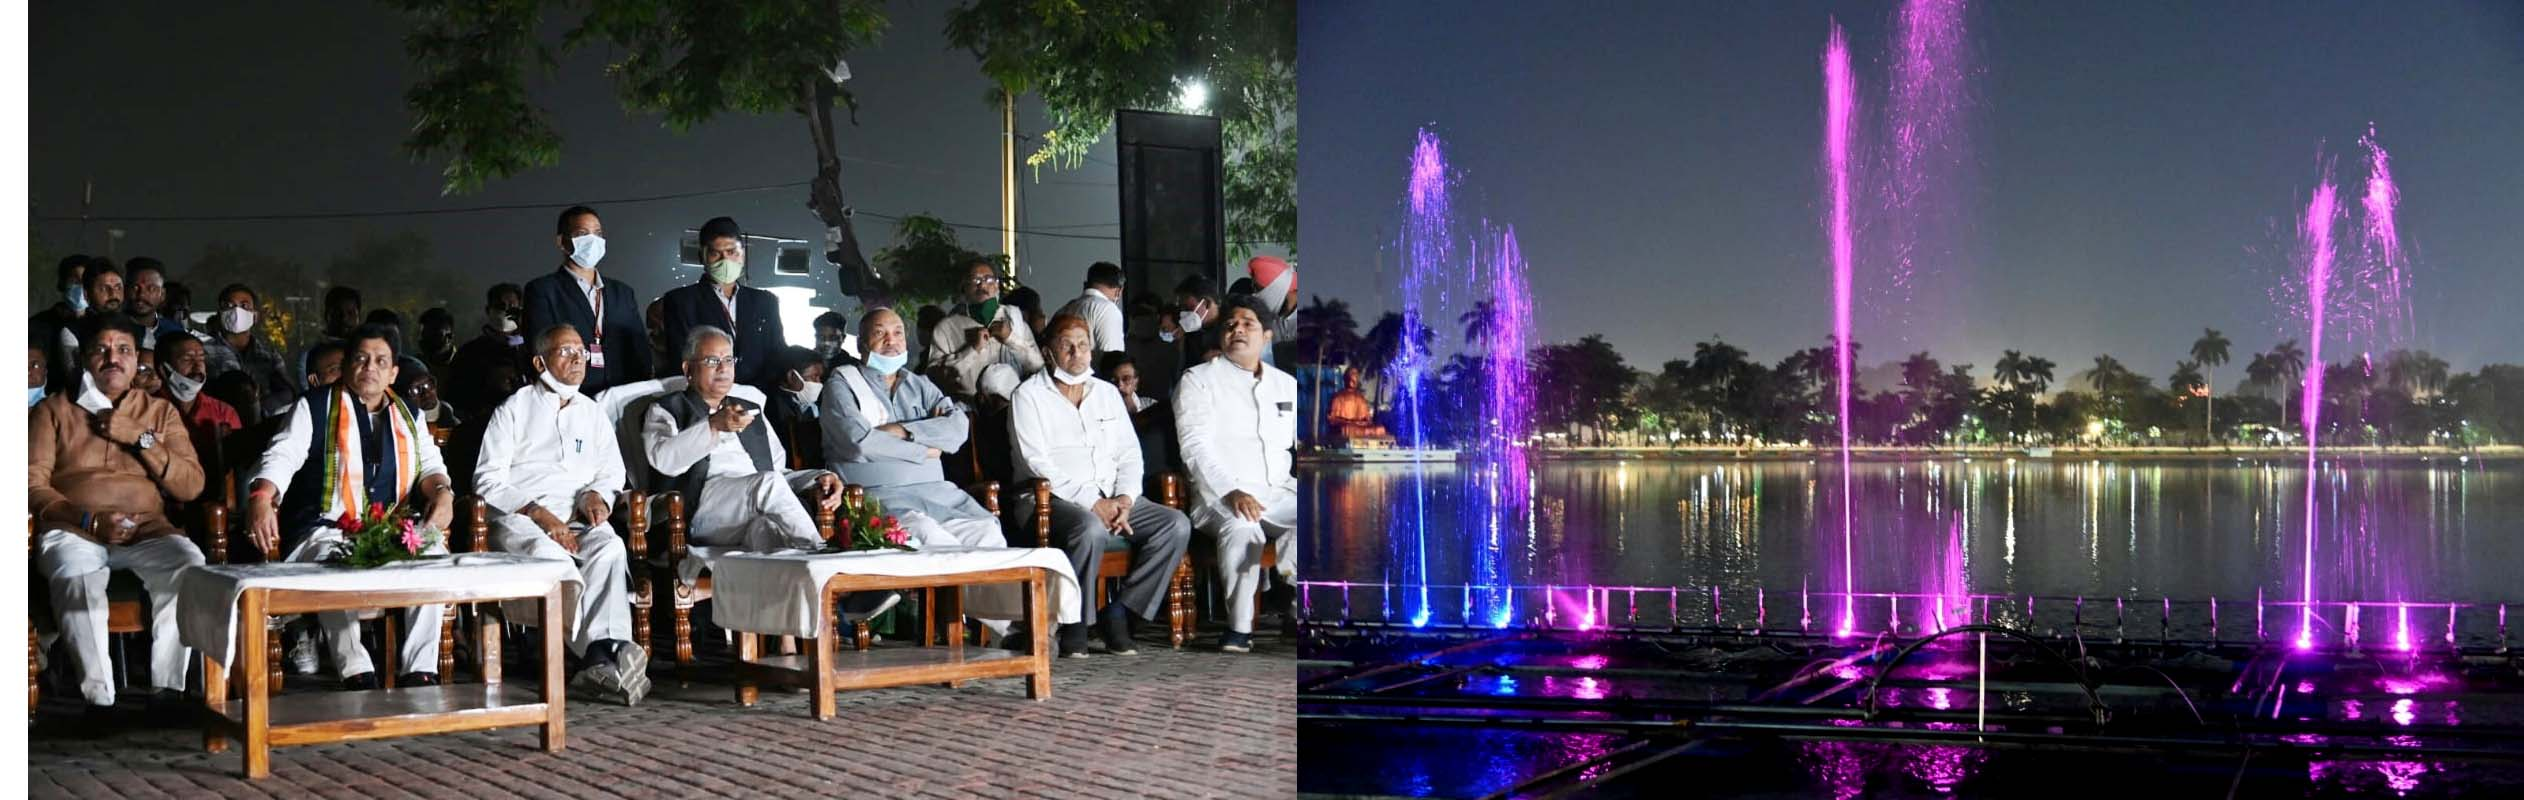 Chief Minister inaugurated the musical fountain at Budhatalab